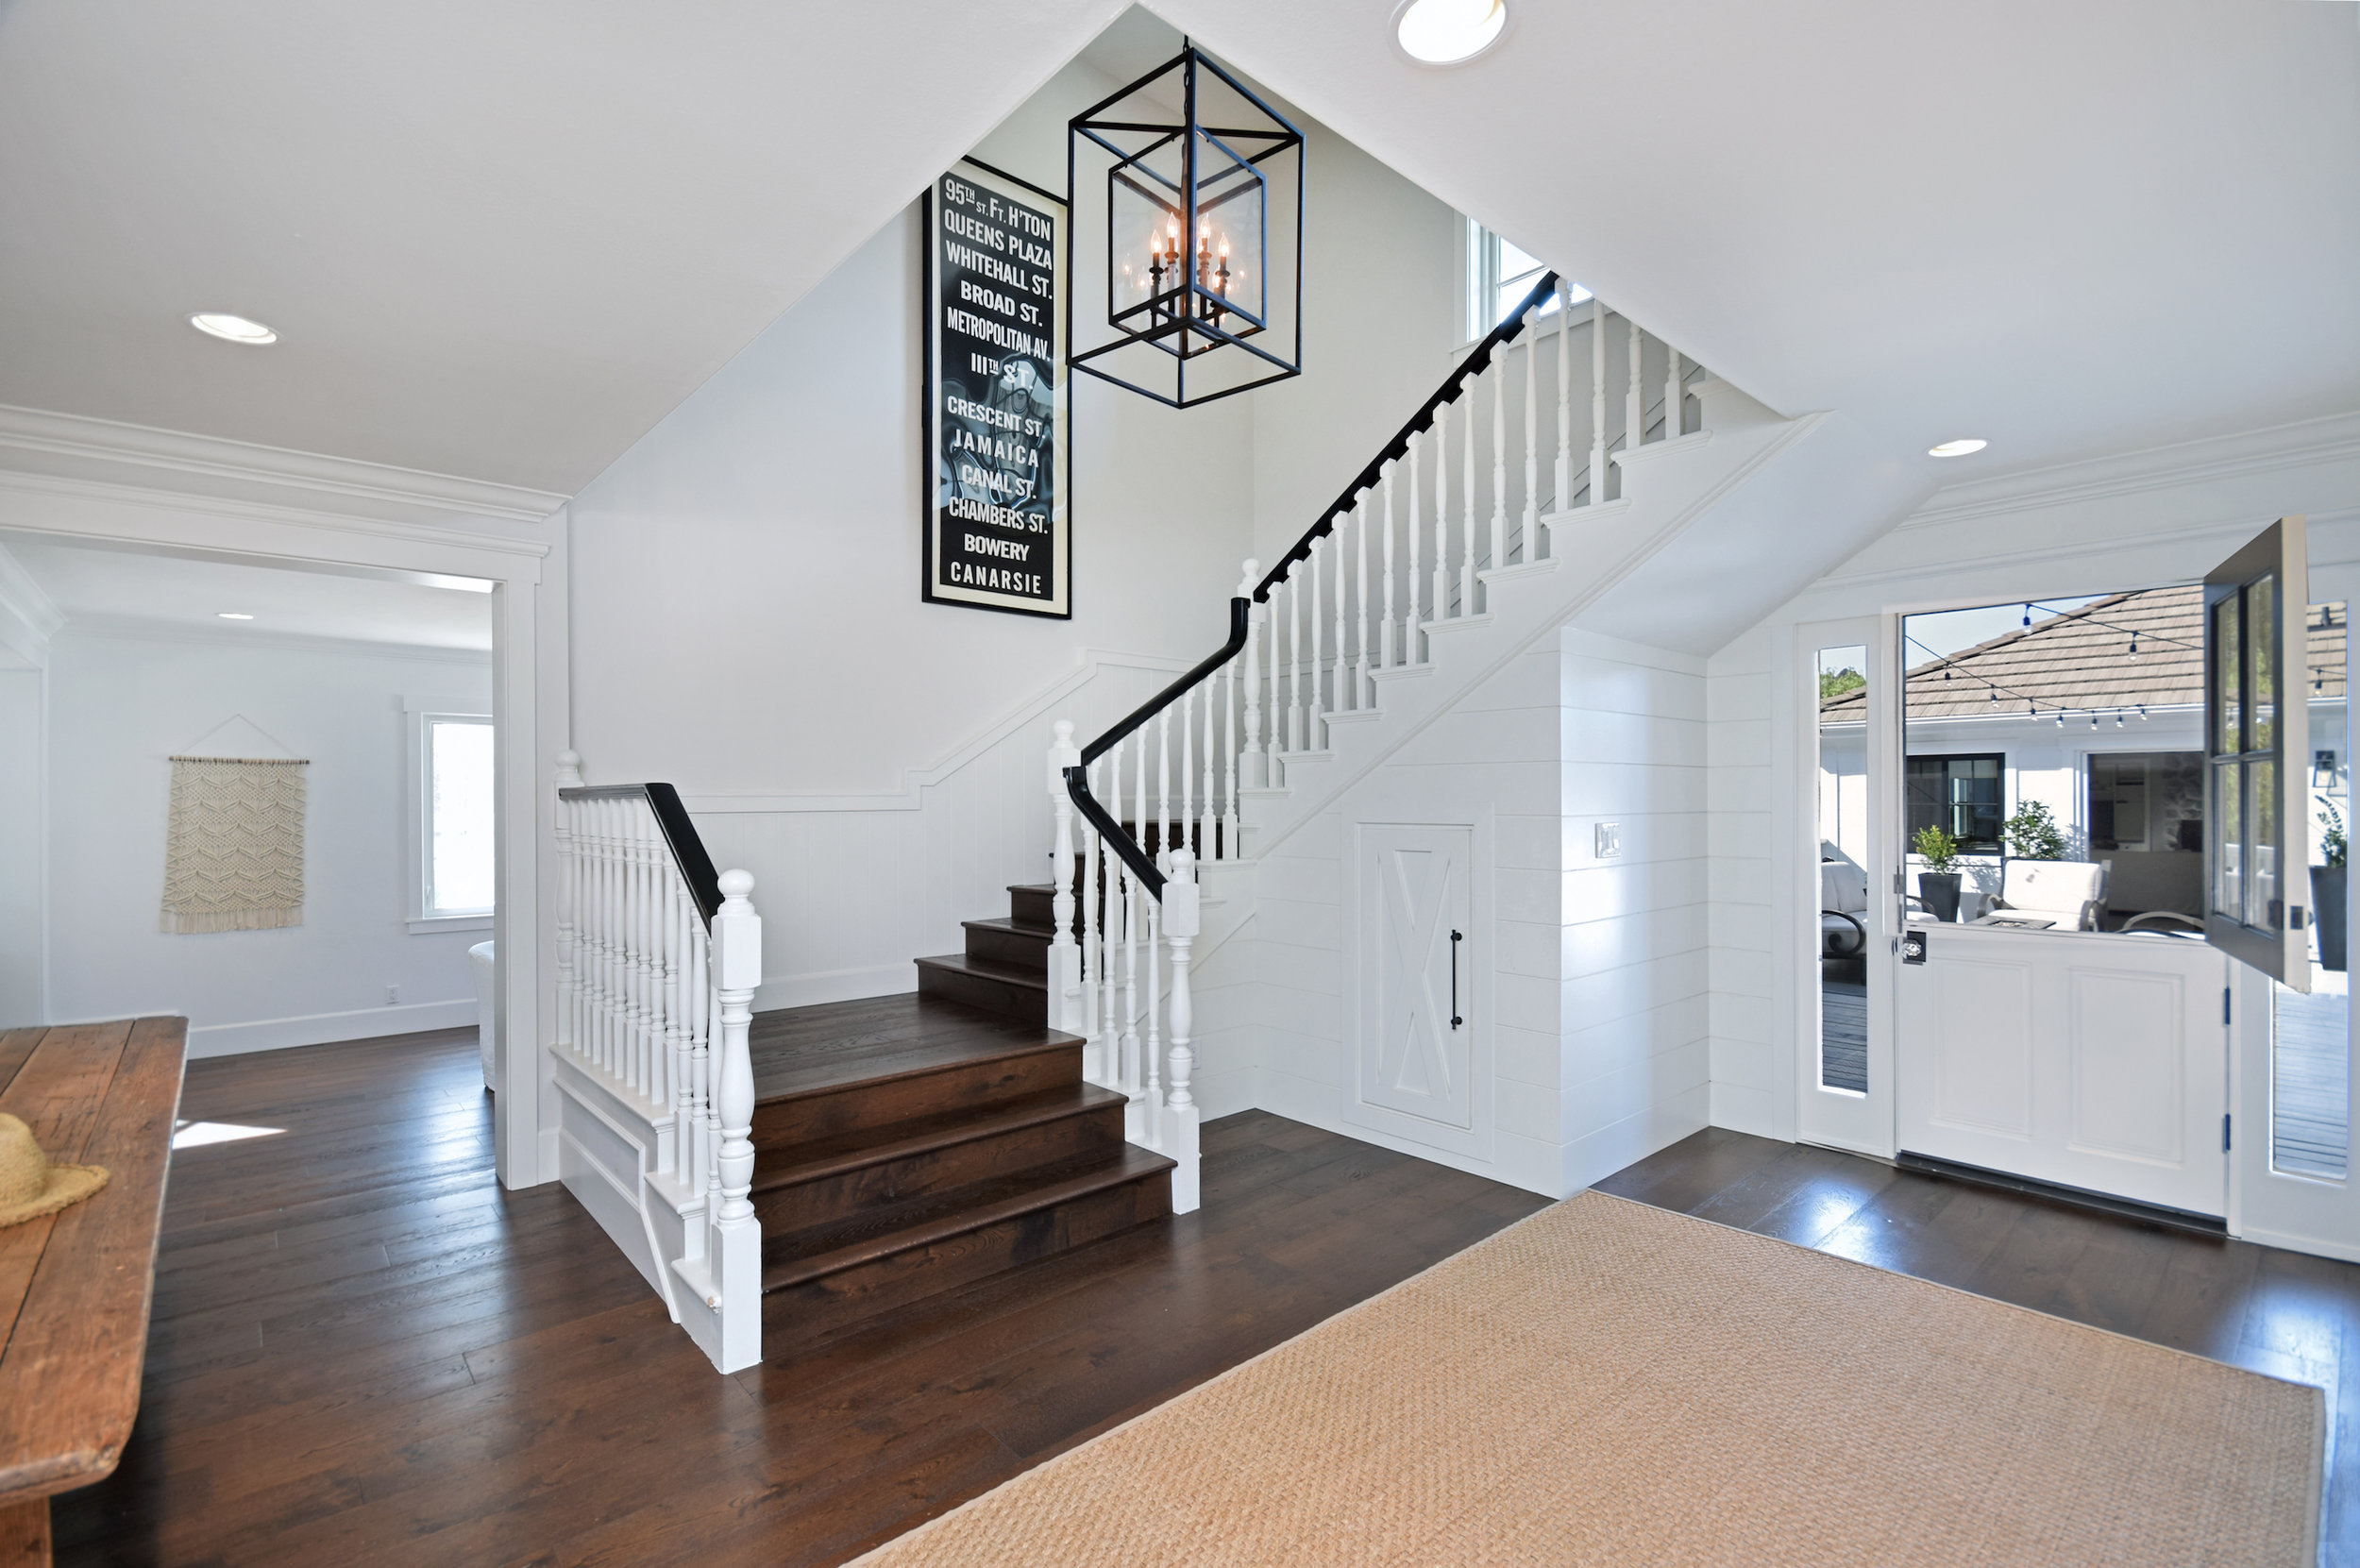 003 Entry 560 Cold Canyon Road For Sale Lease The Malibu Life Team Luxury Real Estate.jpg